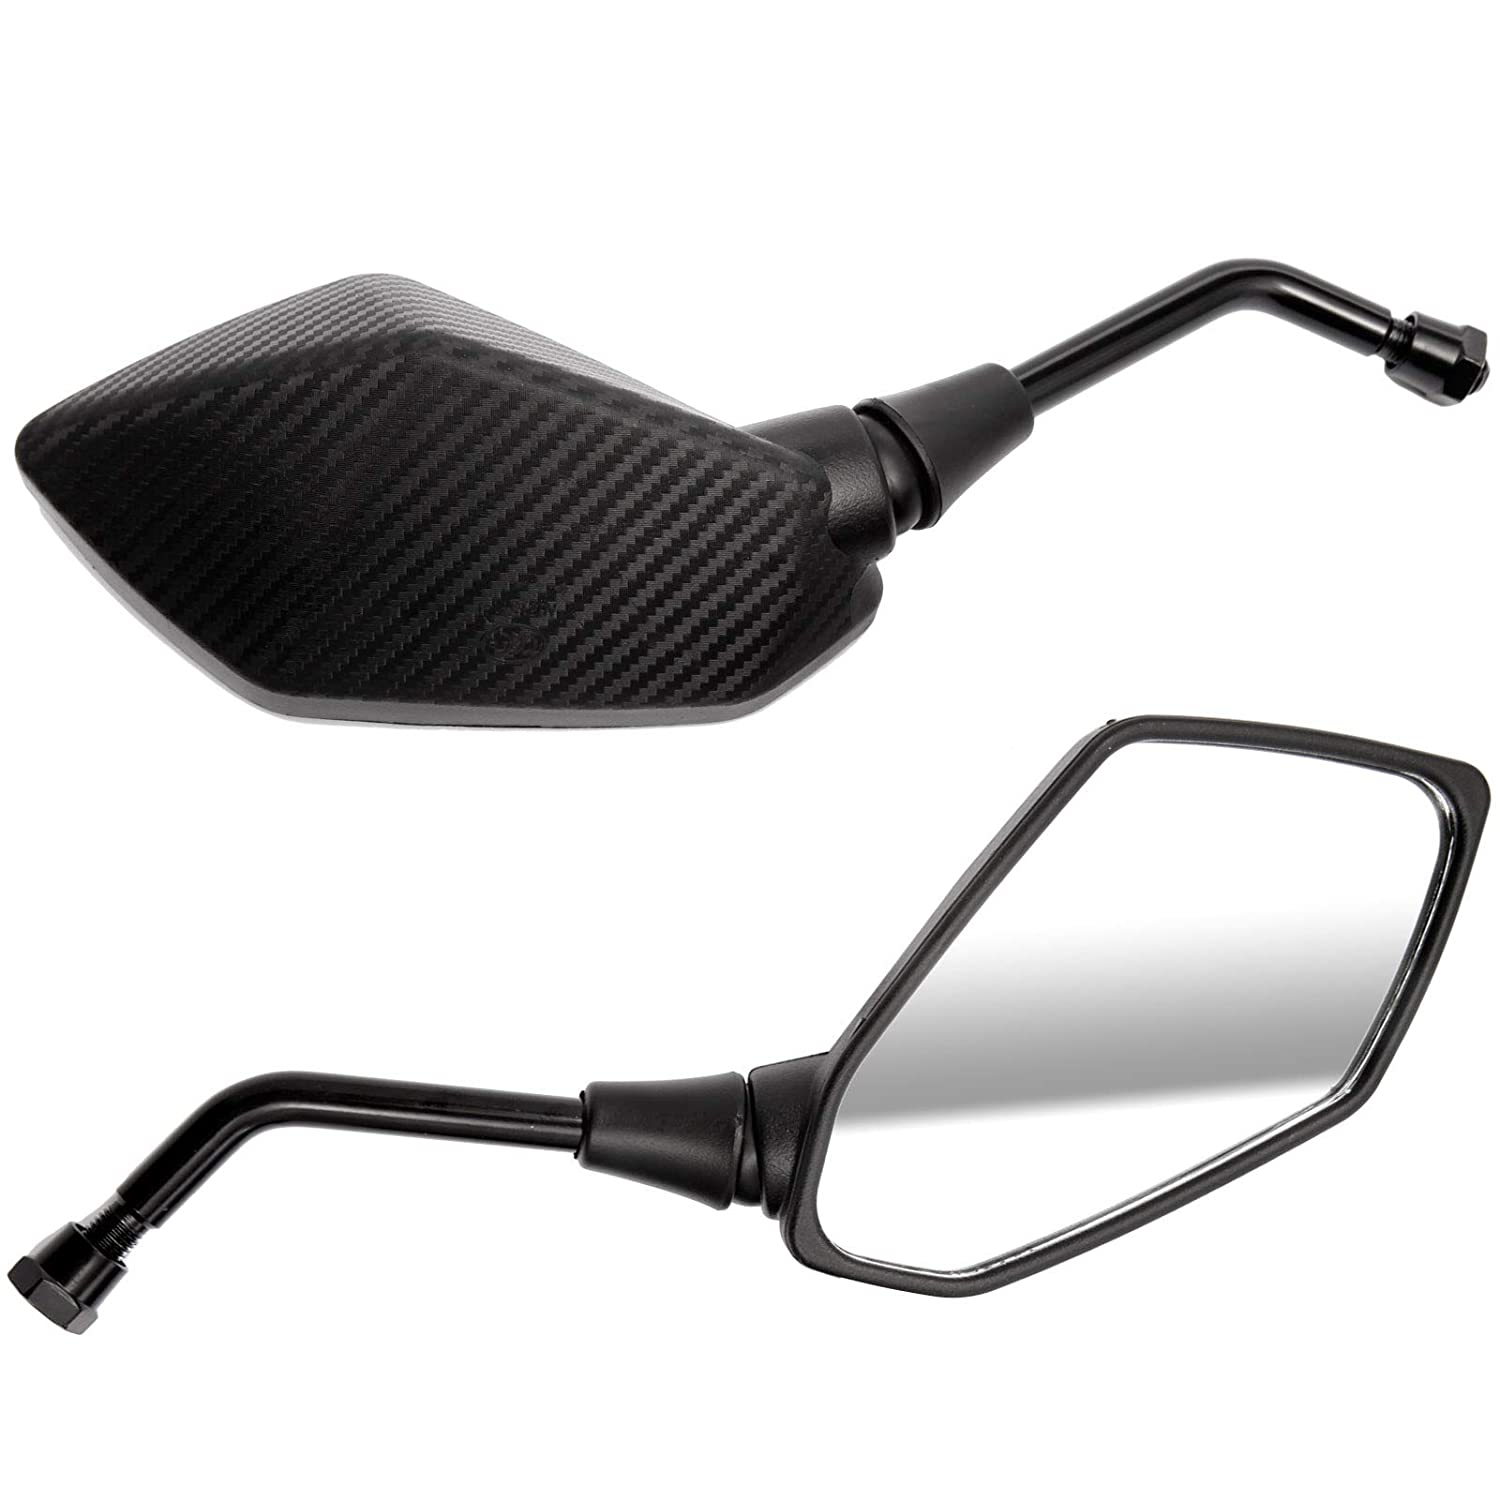 Angled Motorcycle Mirrors Universal 10mm Thread Bike Motorbike Pair 360 Degrees Rotate Black Carbon Effect